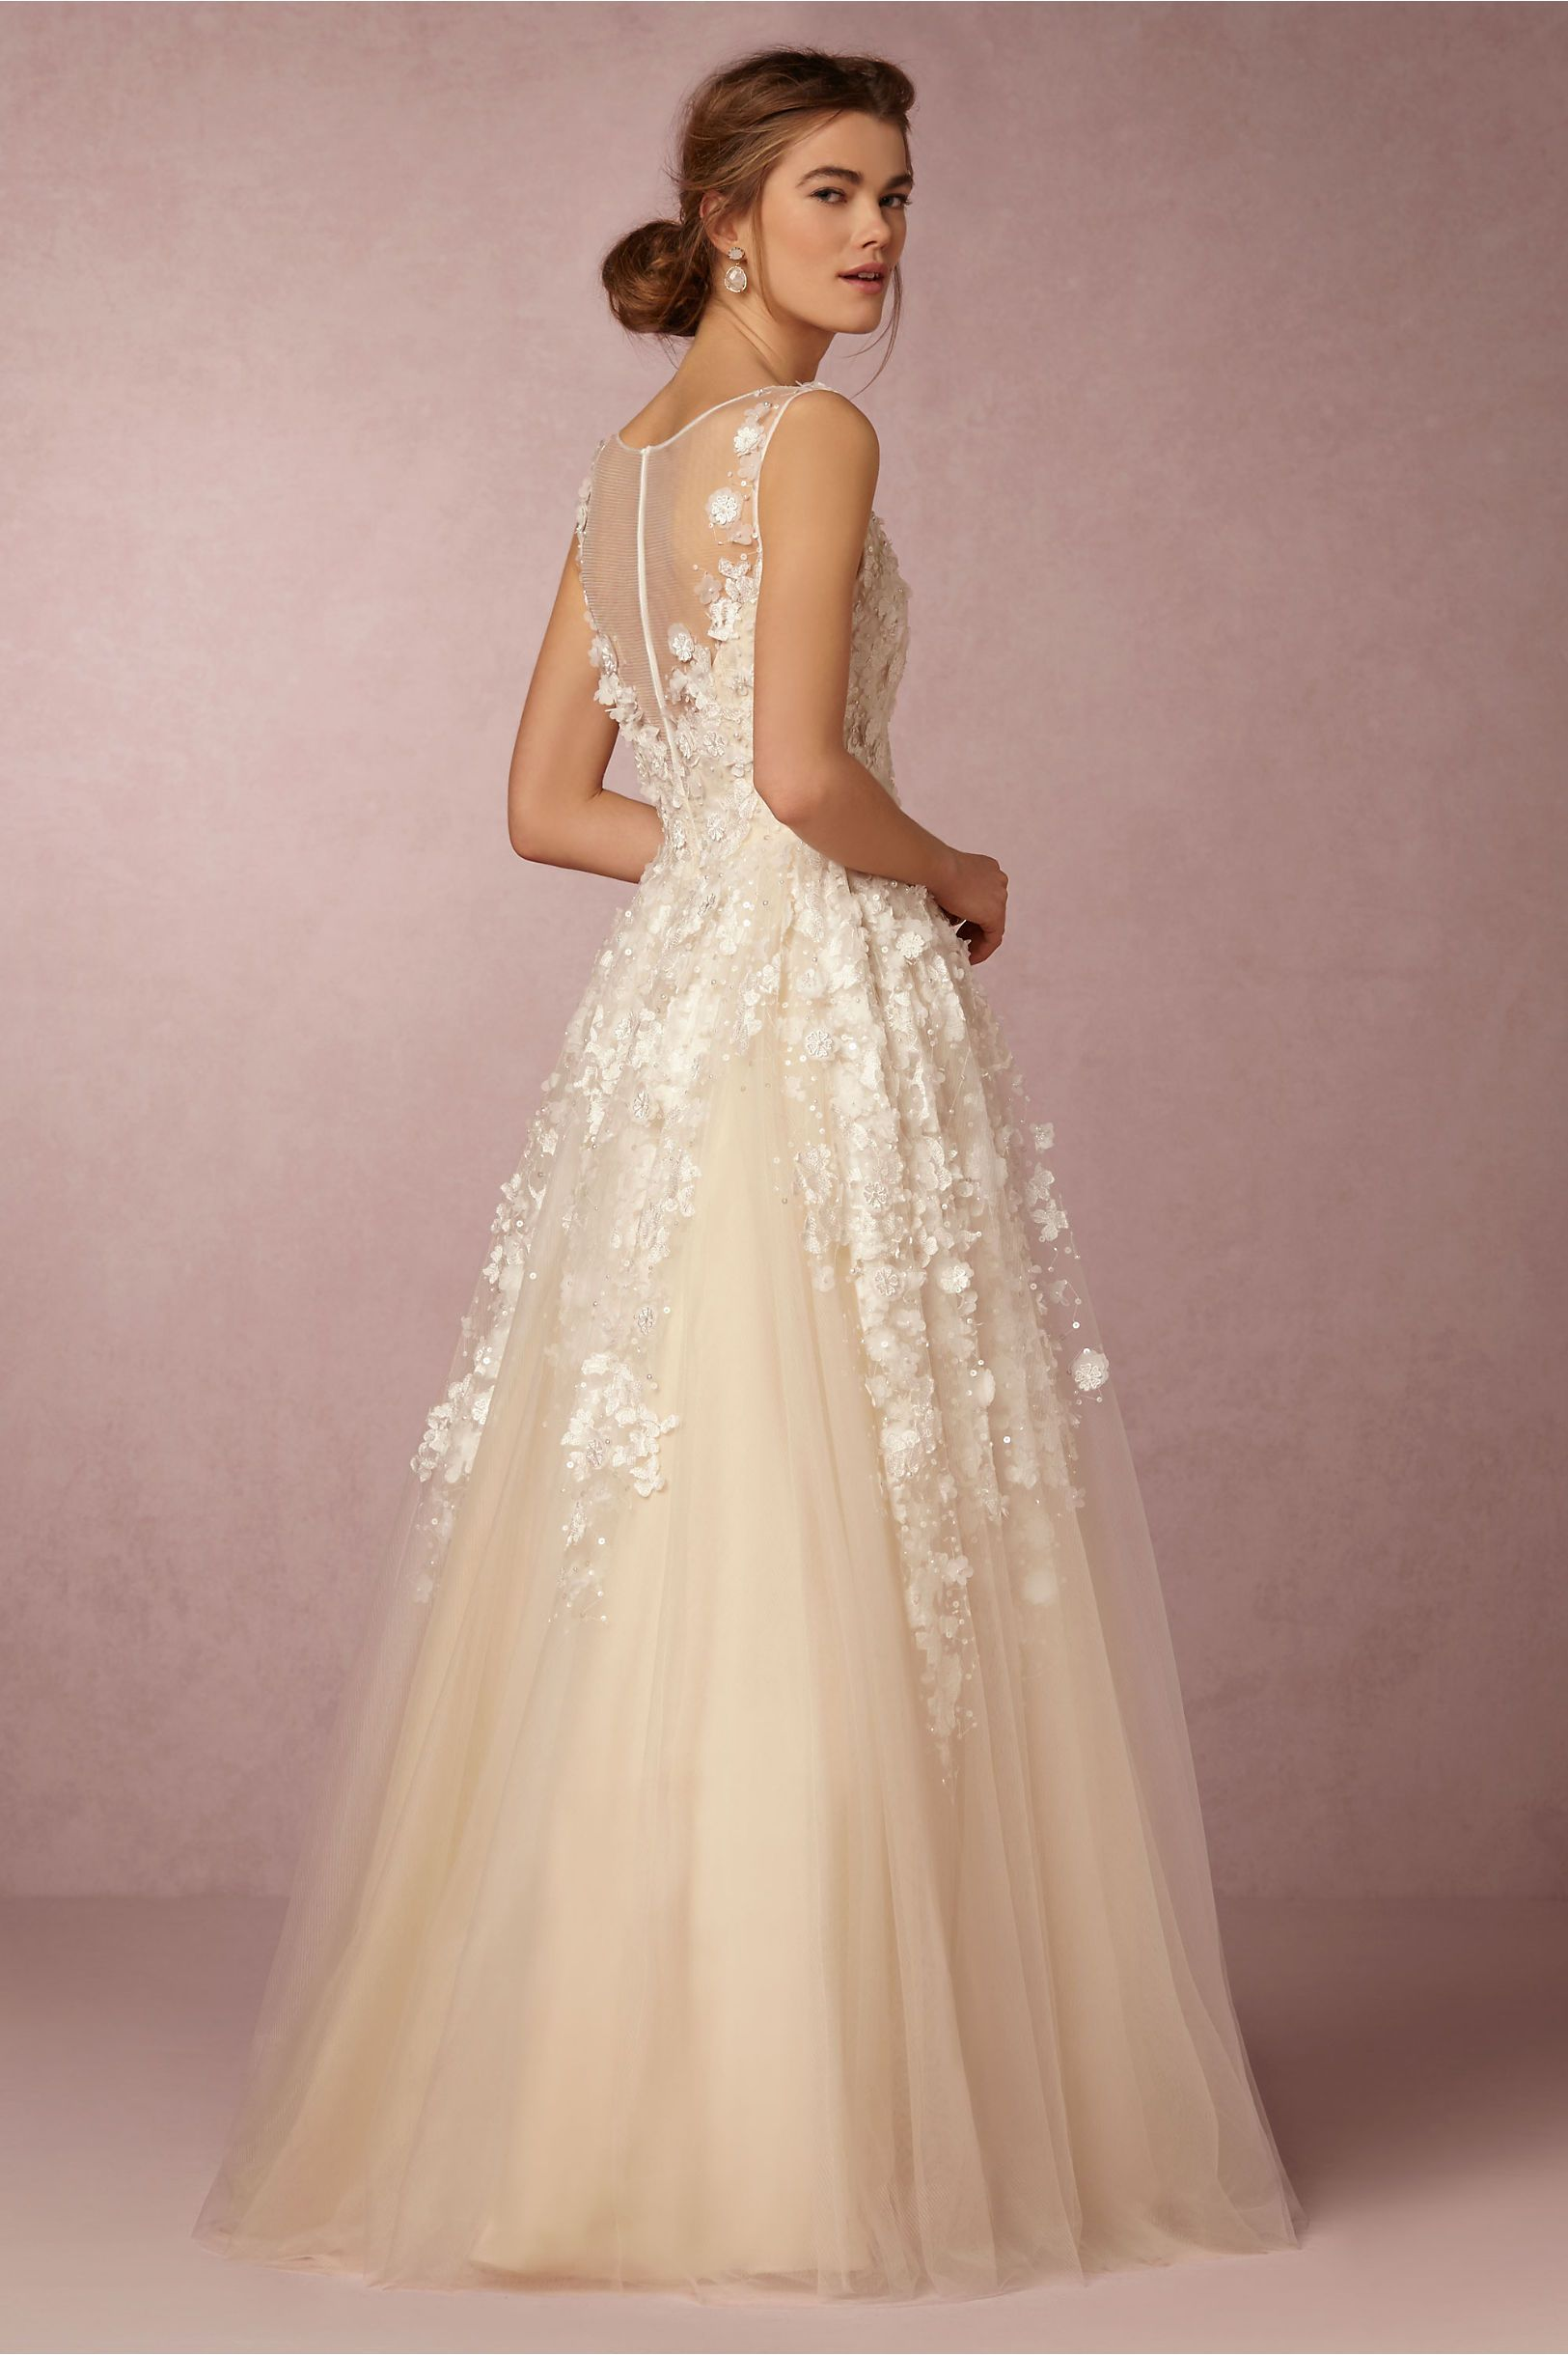 061d3741b83 Fable Gown in Bride Spring 2016 Lookbook at BHLDN